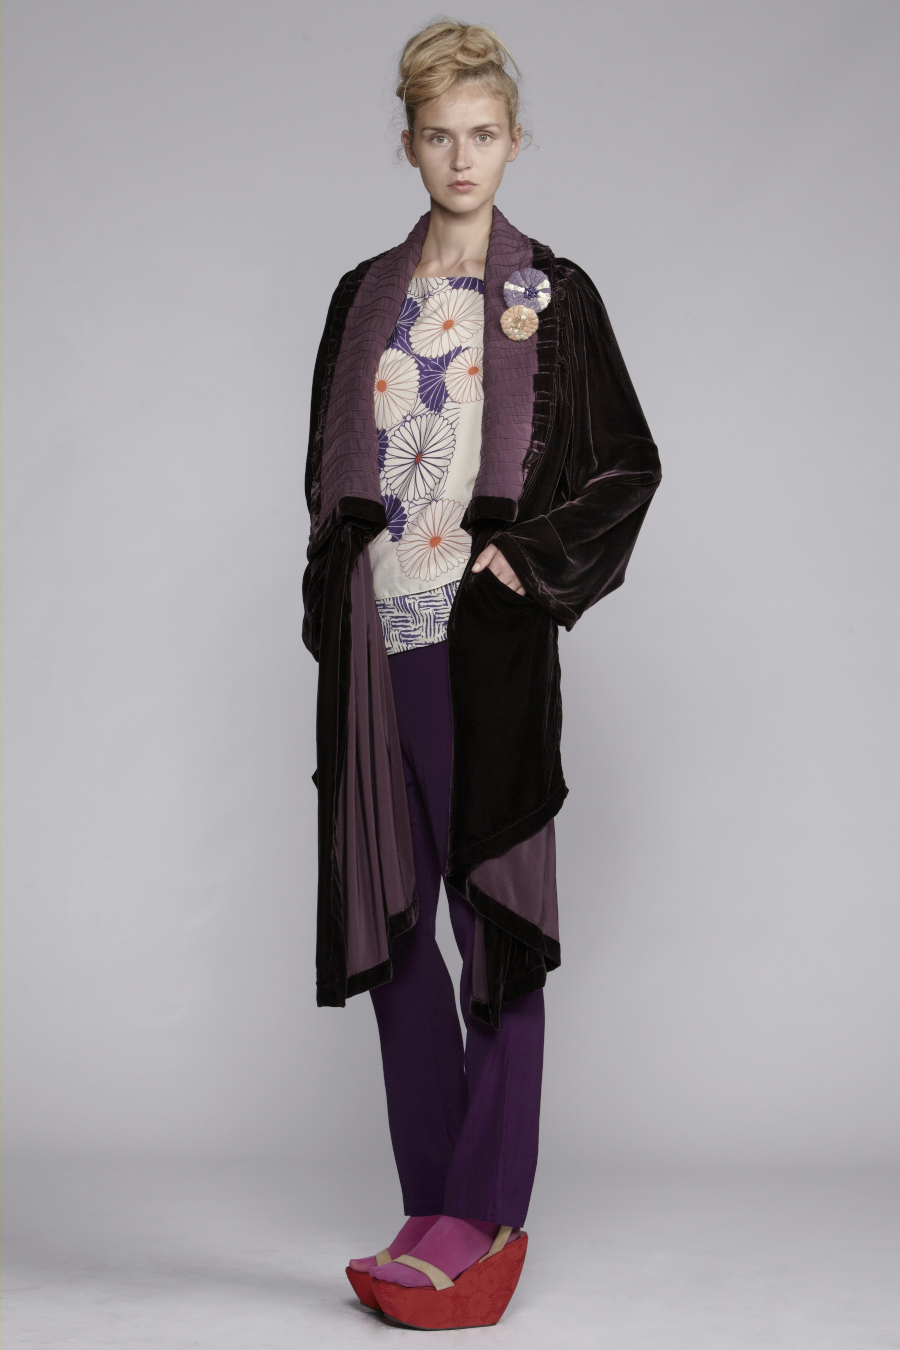 800/A139039 Pleated Shawl Collar Coat     245/A133410 Top     216/A136130 Cummerbund Narrow Pants (Printed Cummerbund)